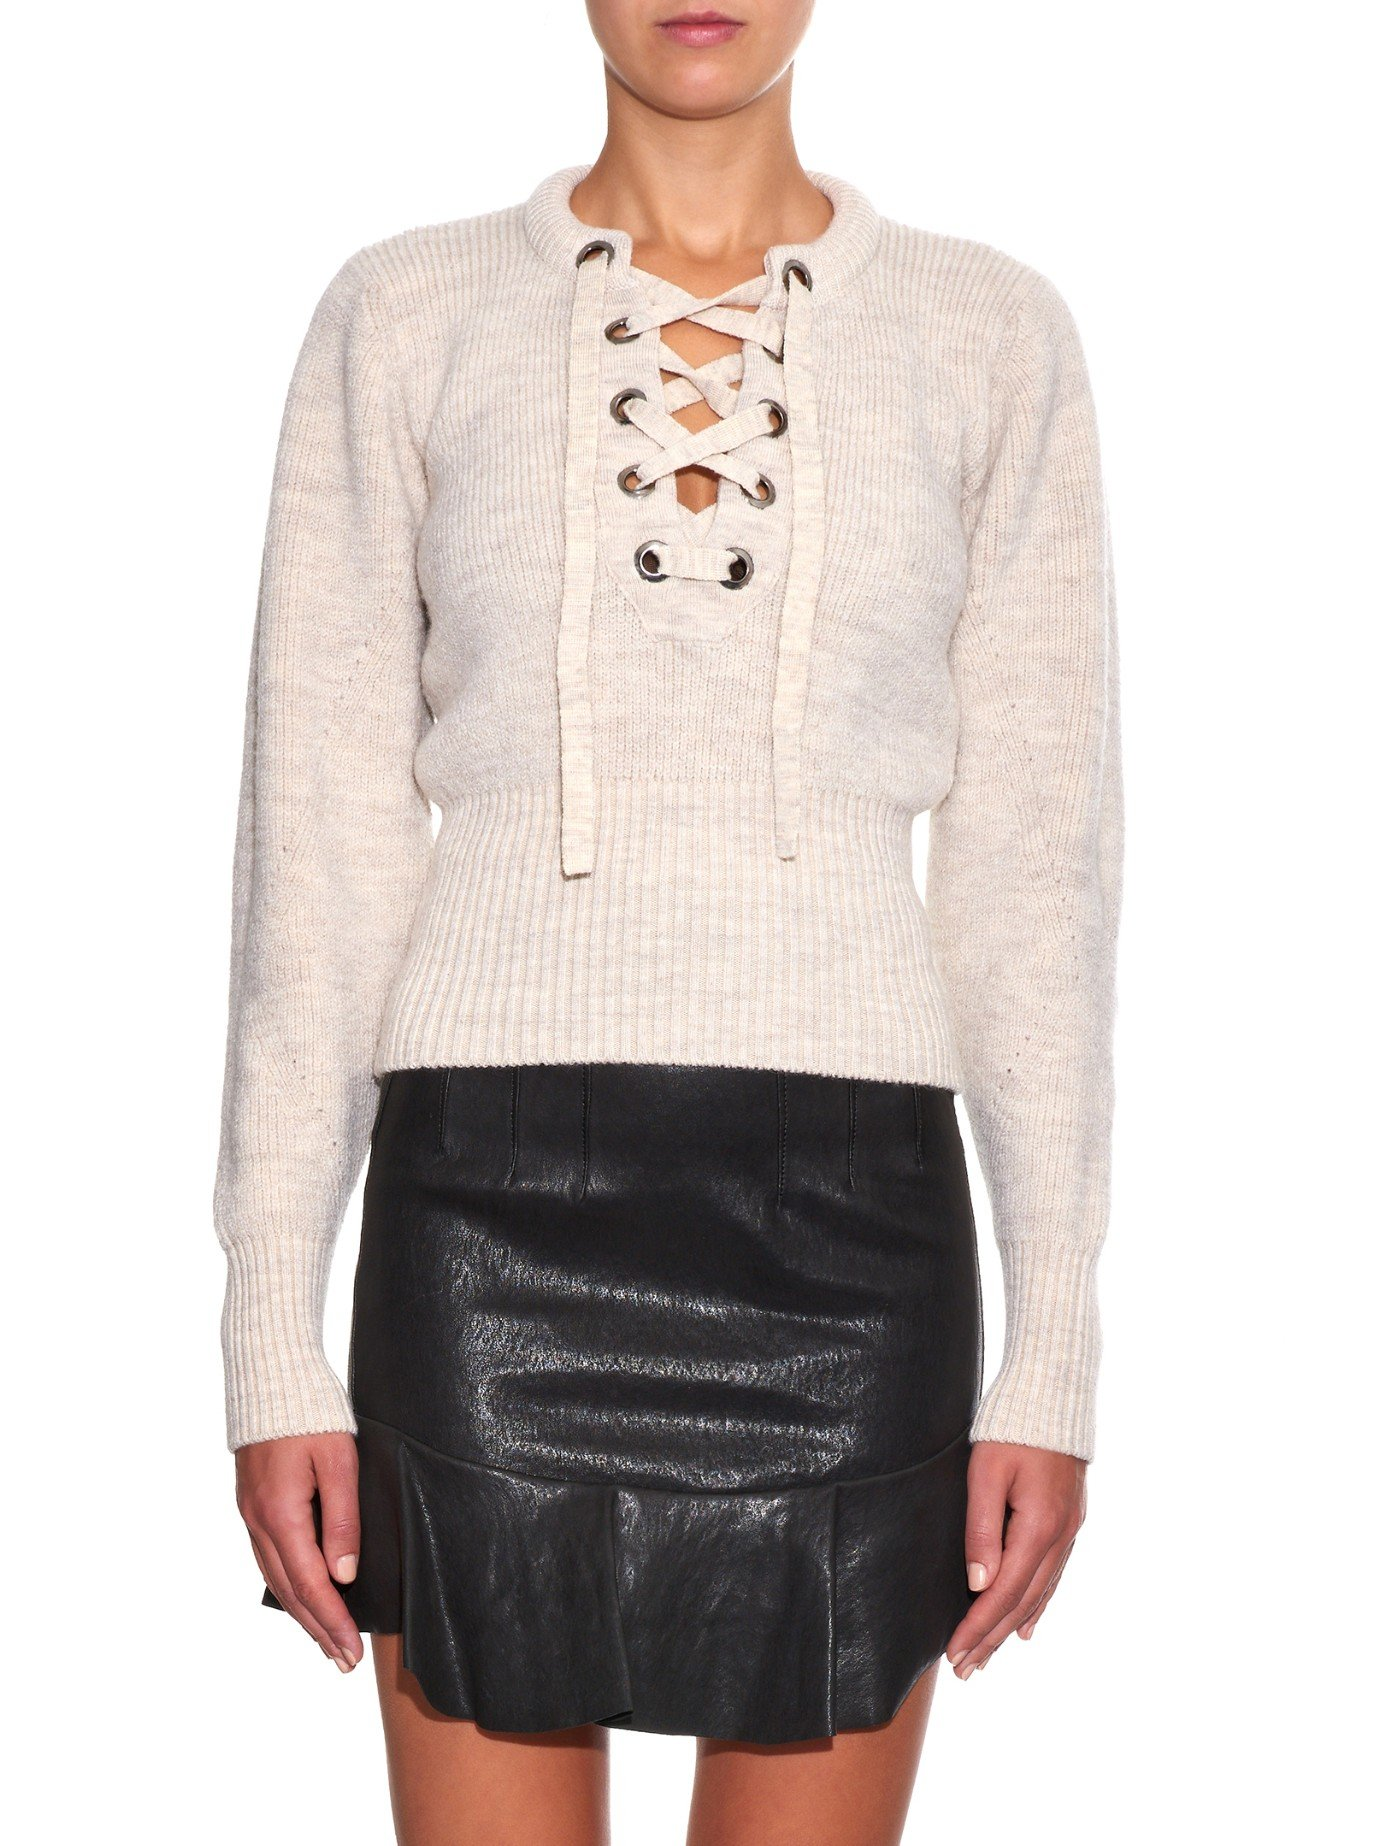 ebfb095475 Lyst - Isabel Marant Charley Lace-up Wool-blend Sweater in White